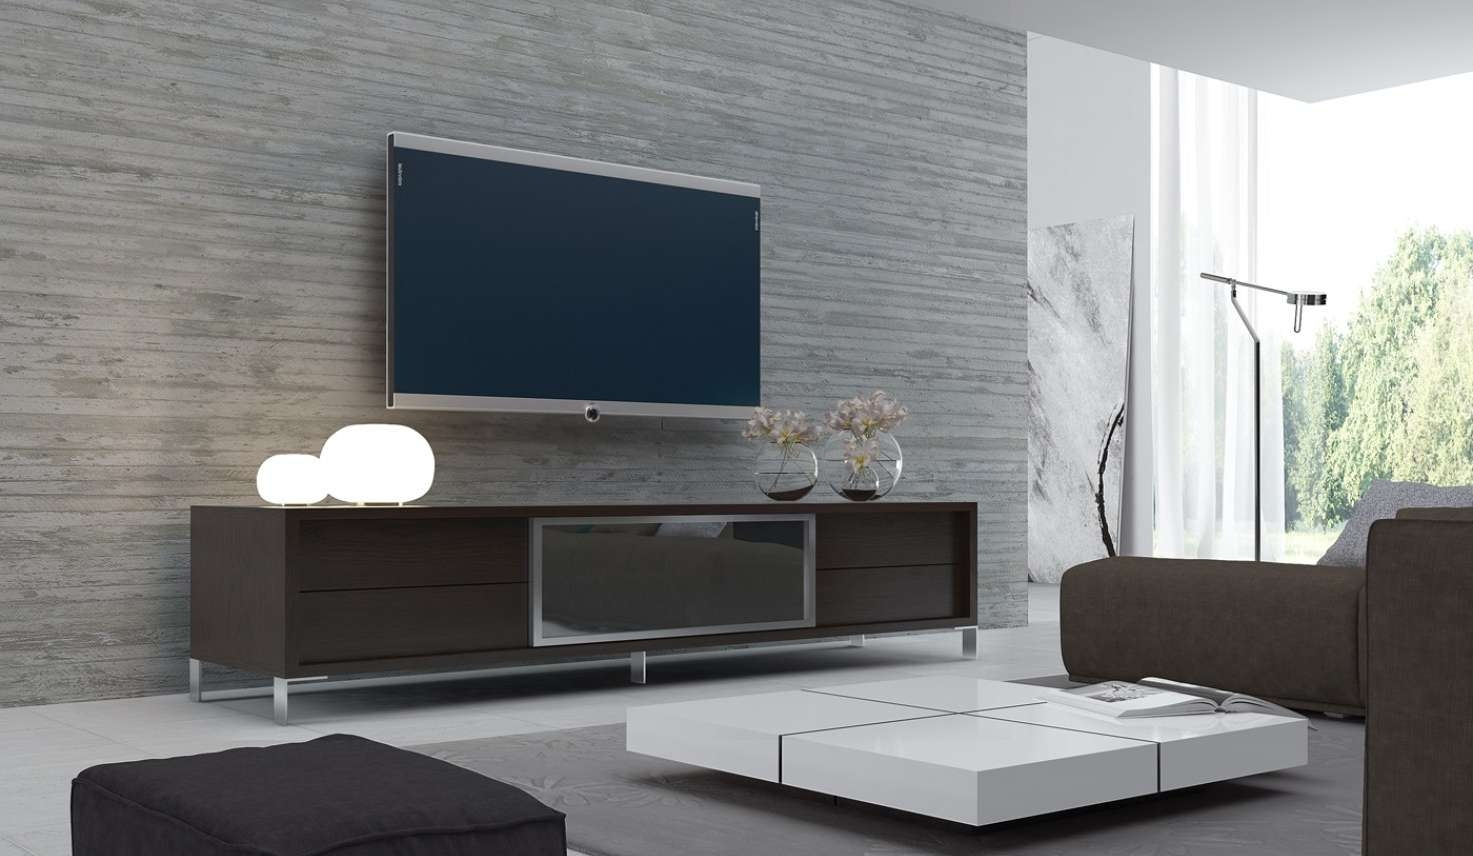 Tv : Exceptional Modern Tv Furniture Cabinets Modern Charm Pertaining To Stylish Tv Cabinets (View 15 of 20)